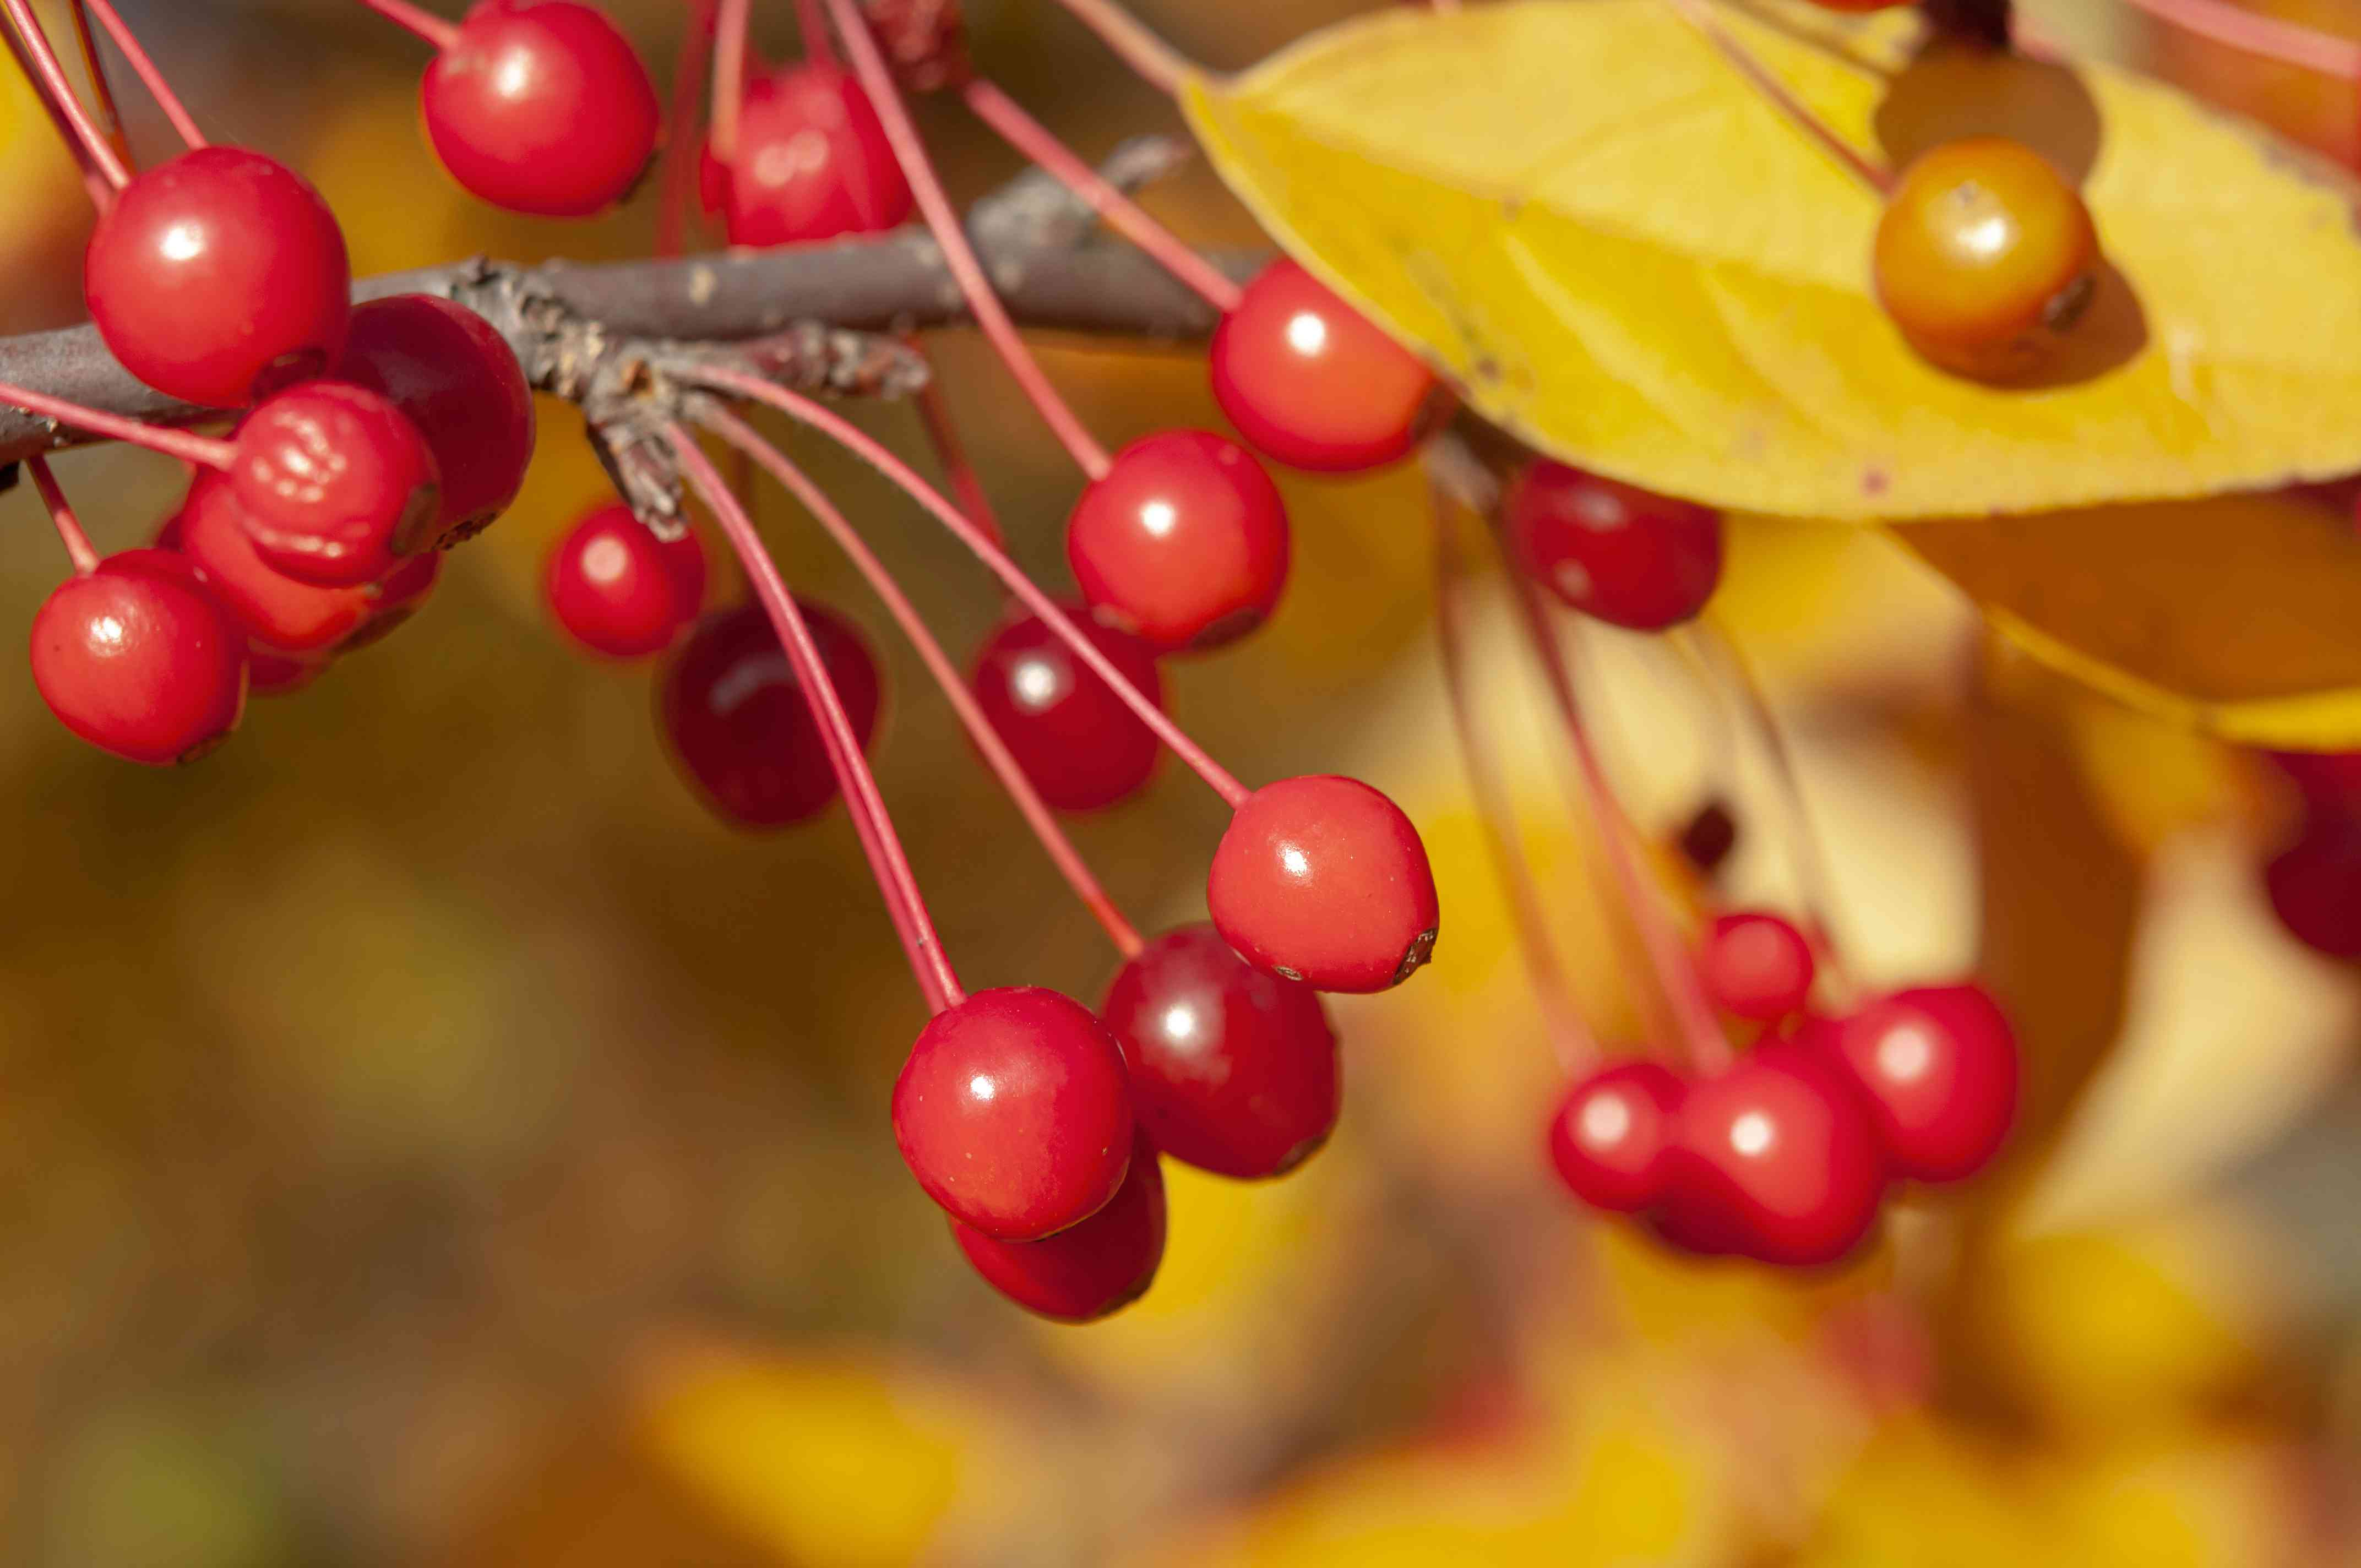 Weeping crabapple tree branch with small red fruit and yellow leaf in sunlight closeup